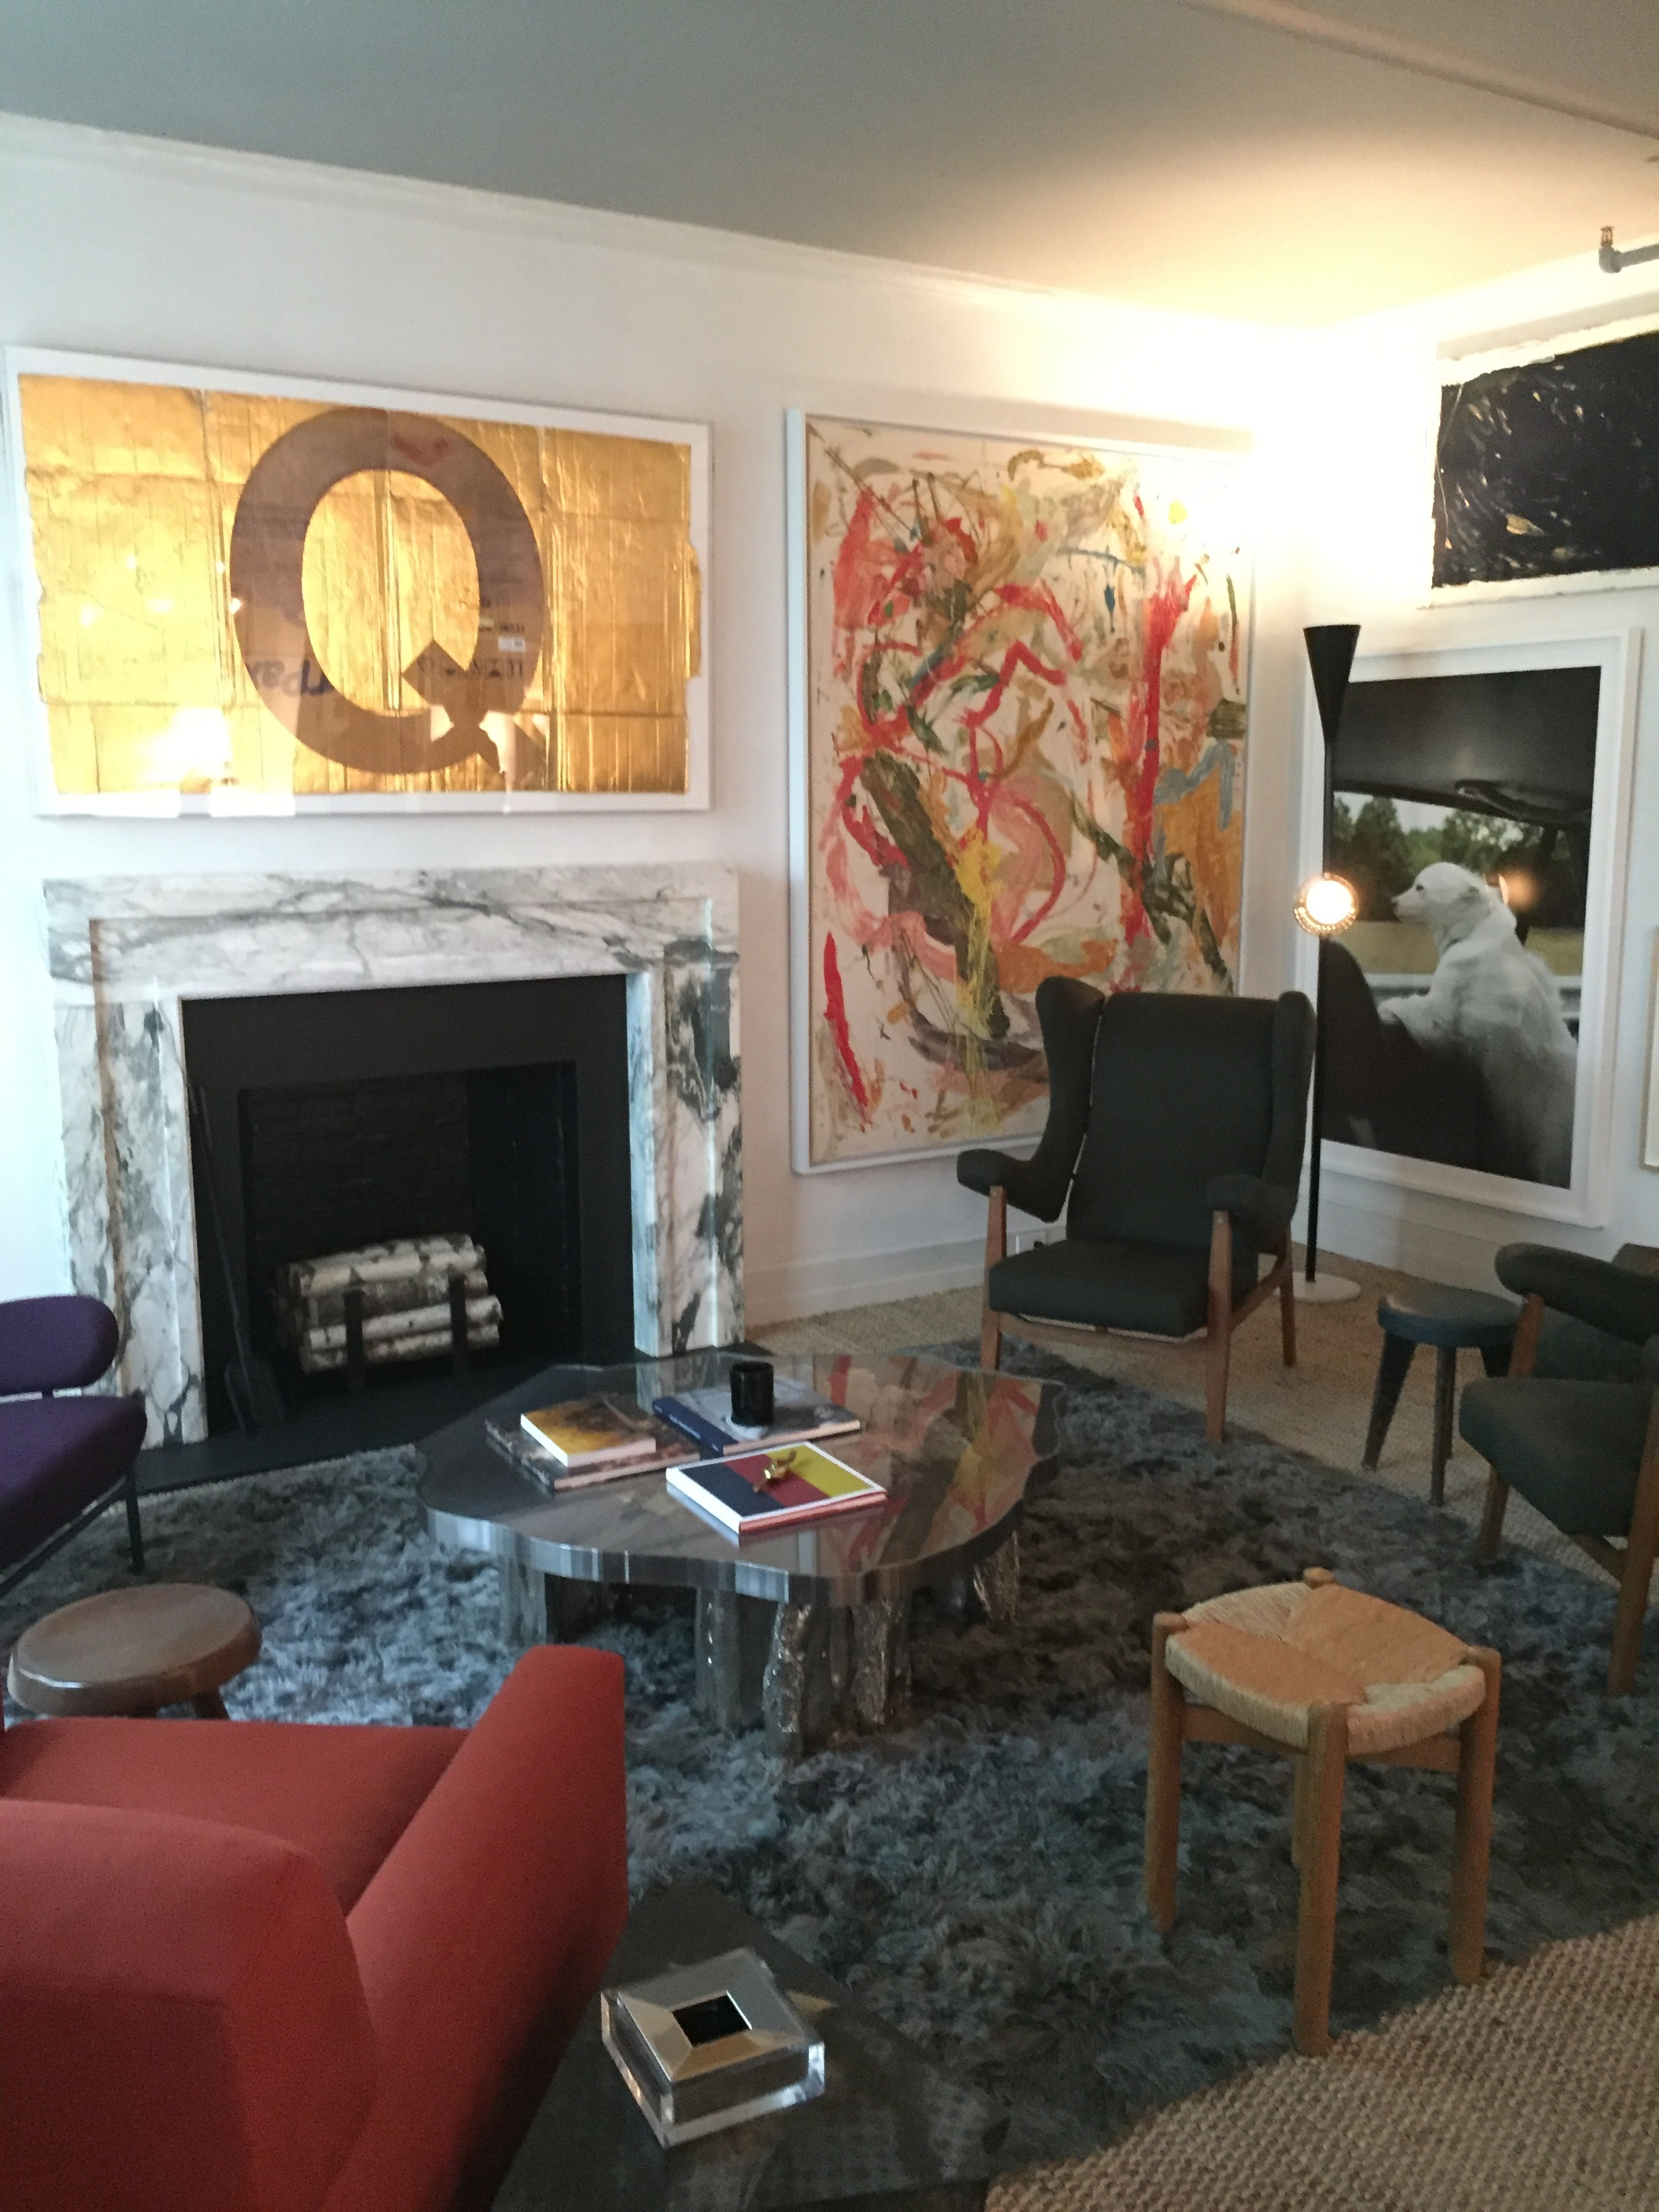 One view of the room - so much artwork in mixed mediums.